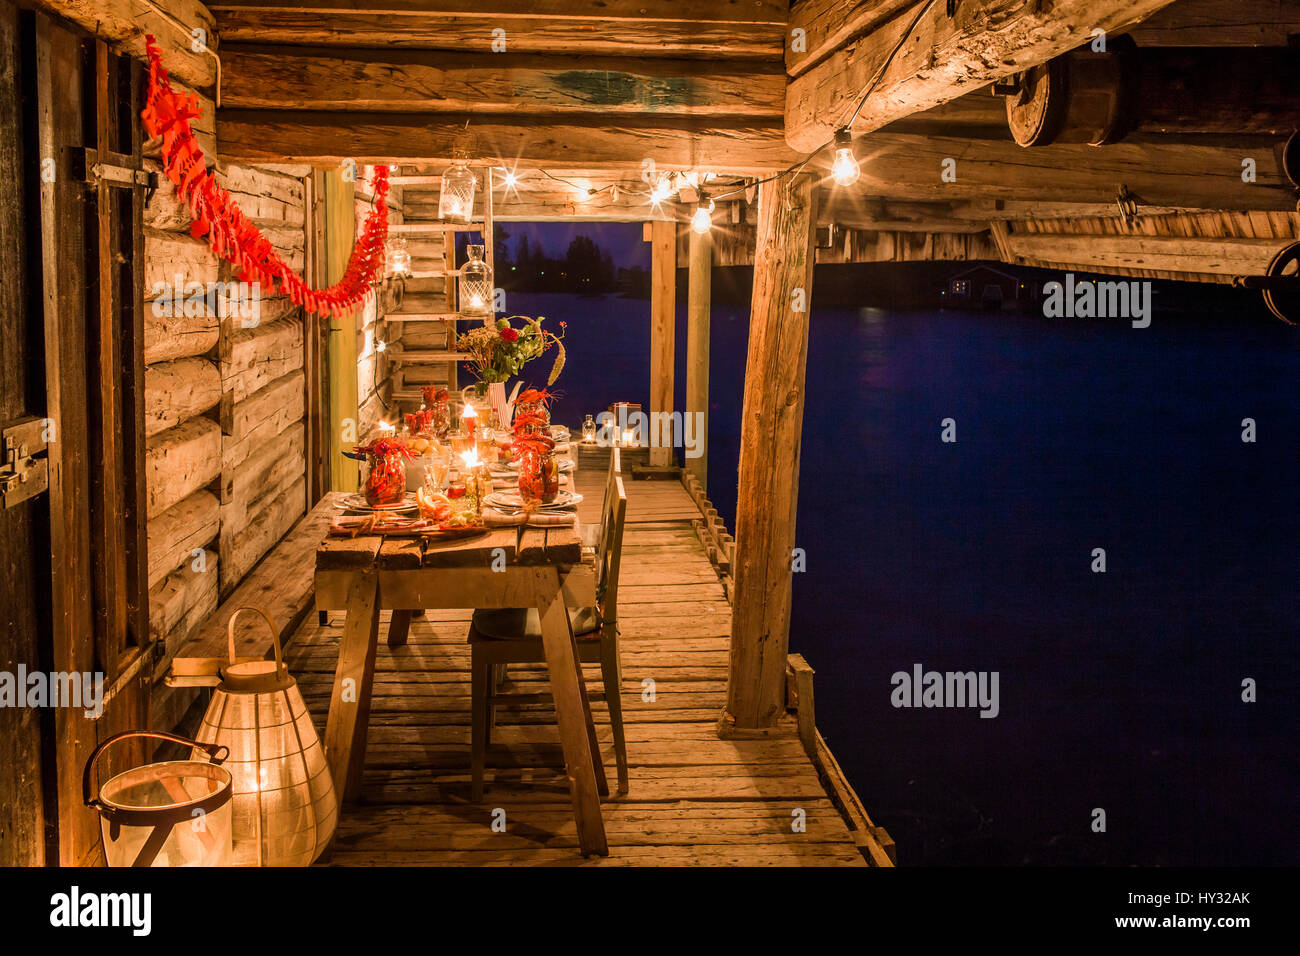 Sweden, Patio with fresh crayfish on wooden table - Stock Image